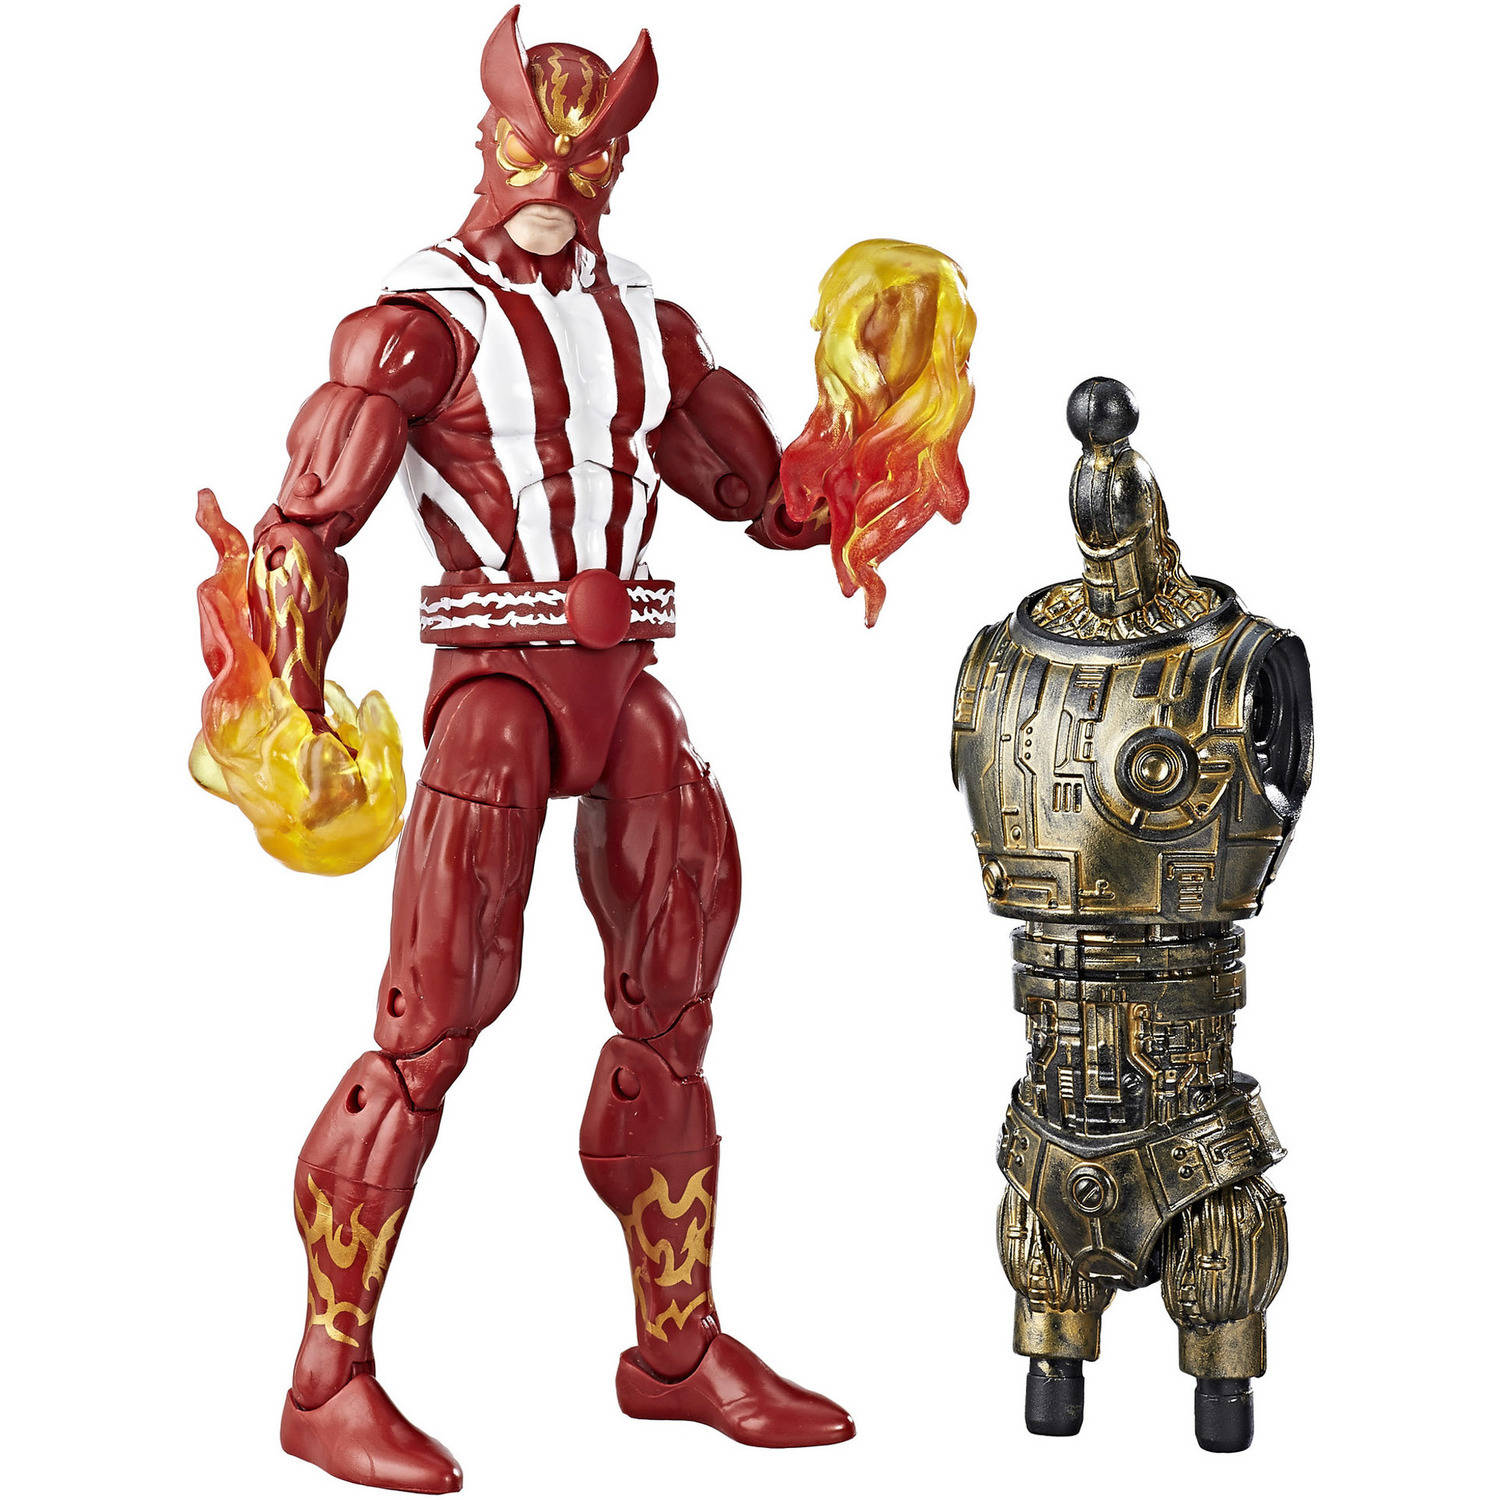 Marvel X-Men 6-Inch Legends Series Marvels Sunfire by Hasbro